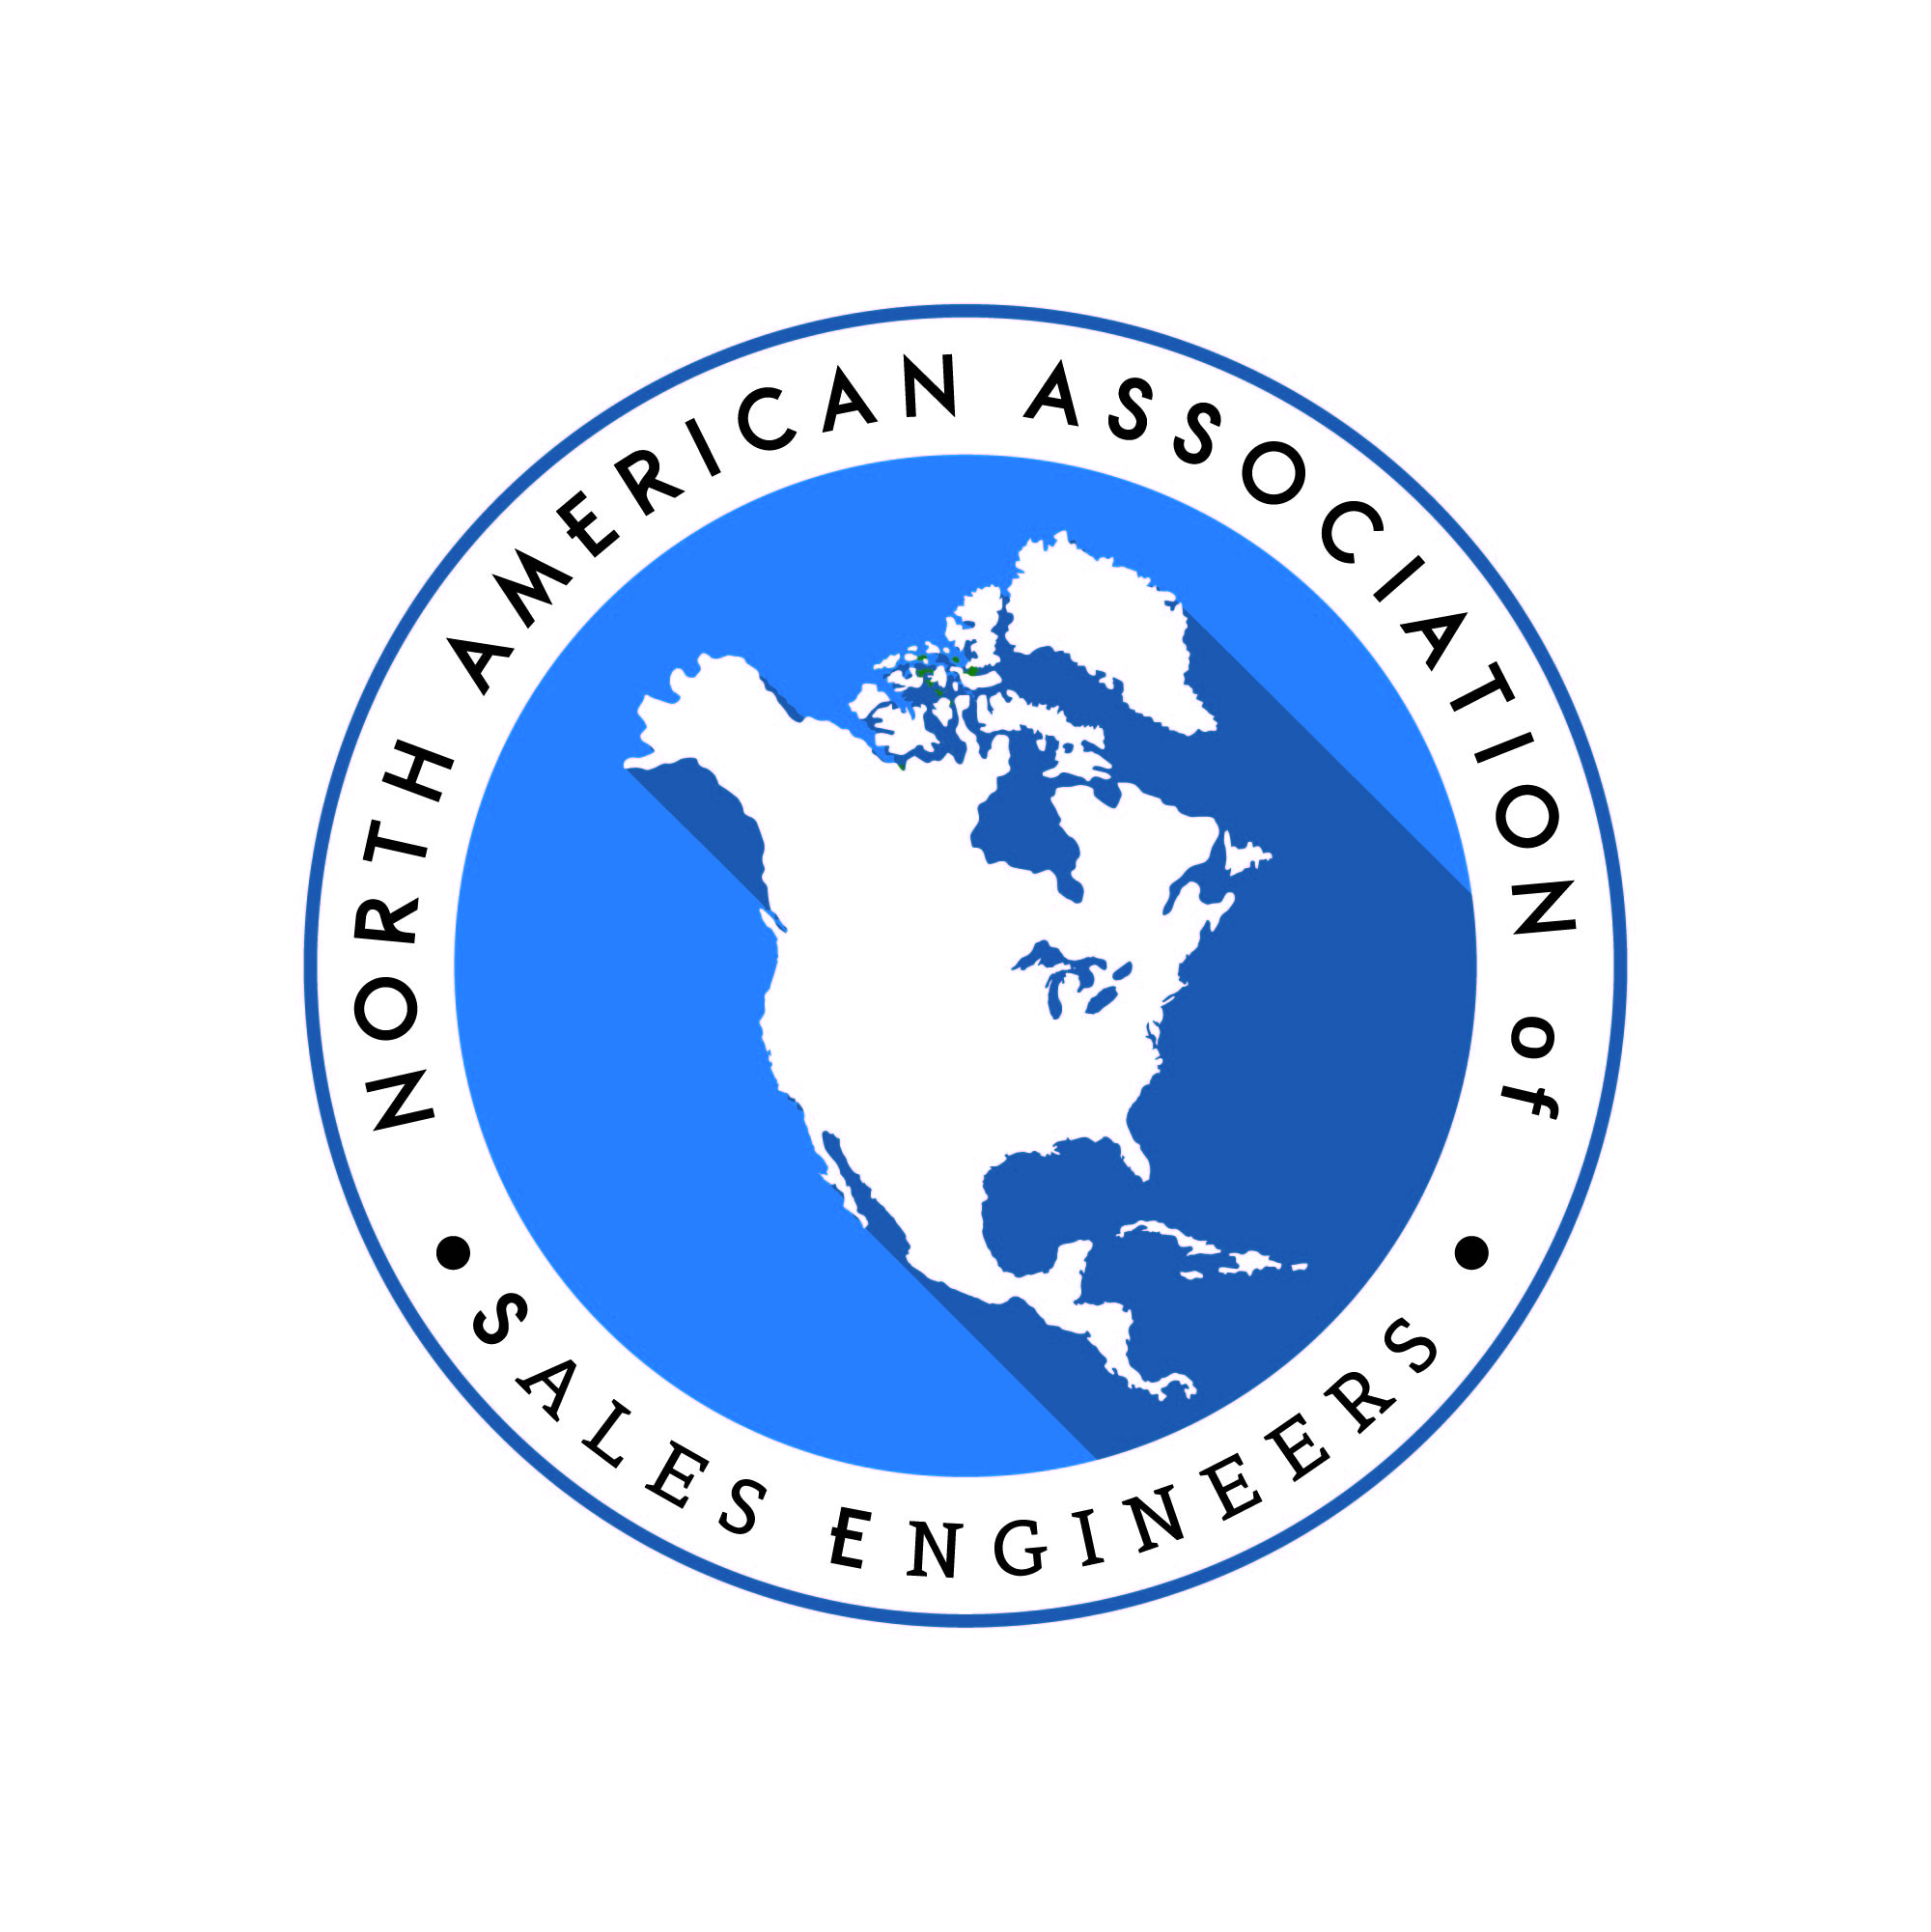 NAASE Announces the North American Sales Engineer of the Year